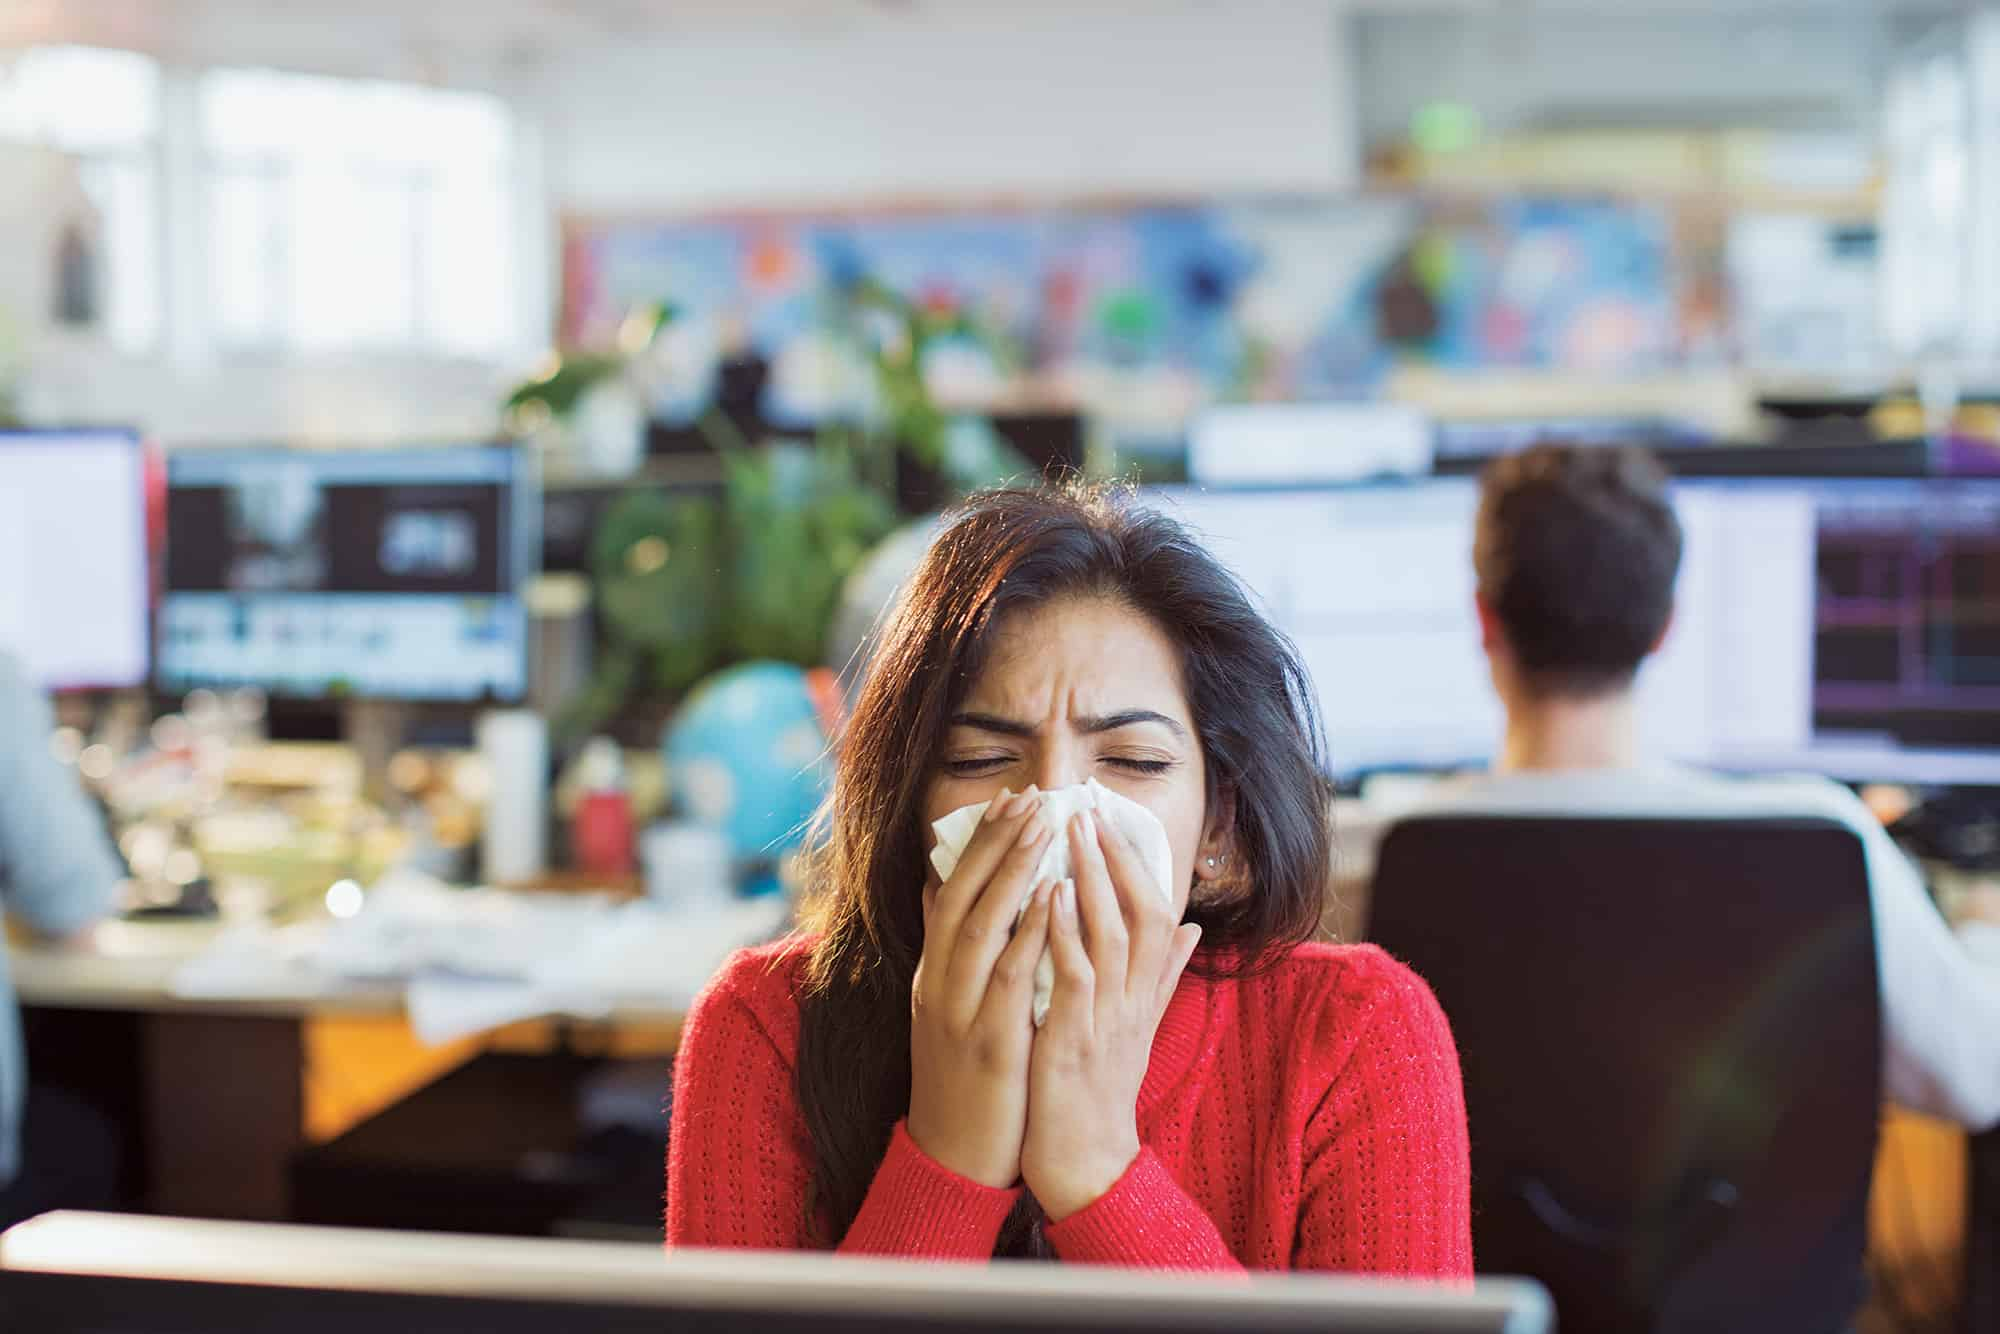 Go Figure: 'Tis the season for sharing...your cold and flu around the office